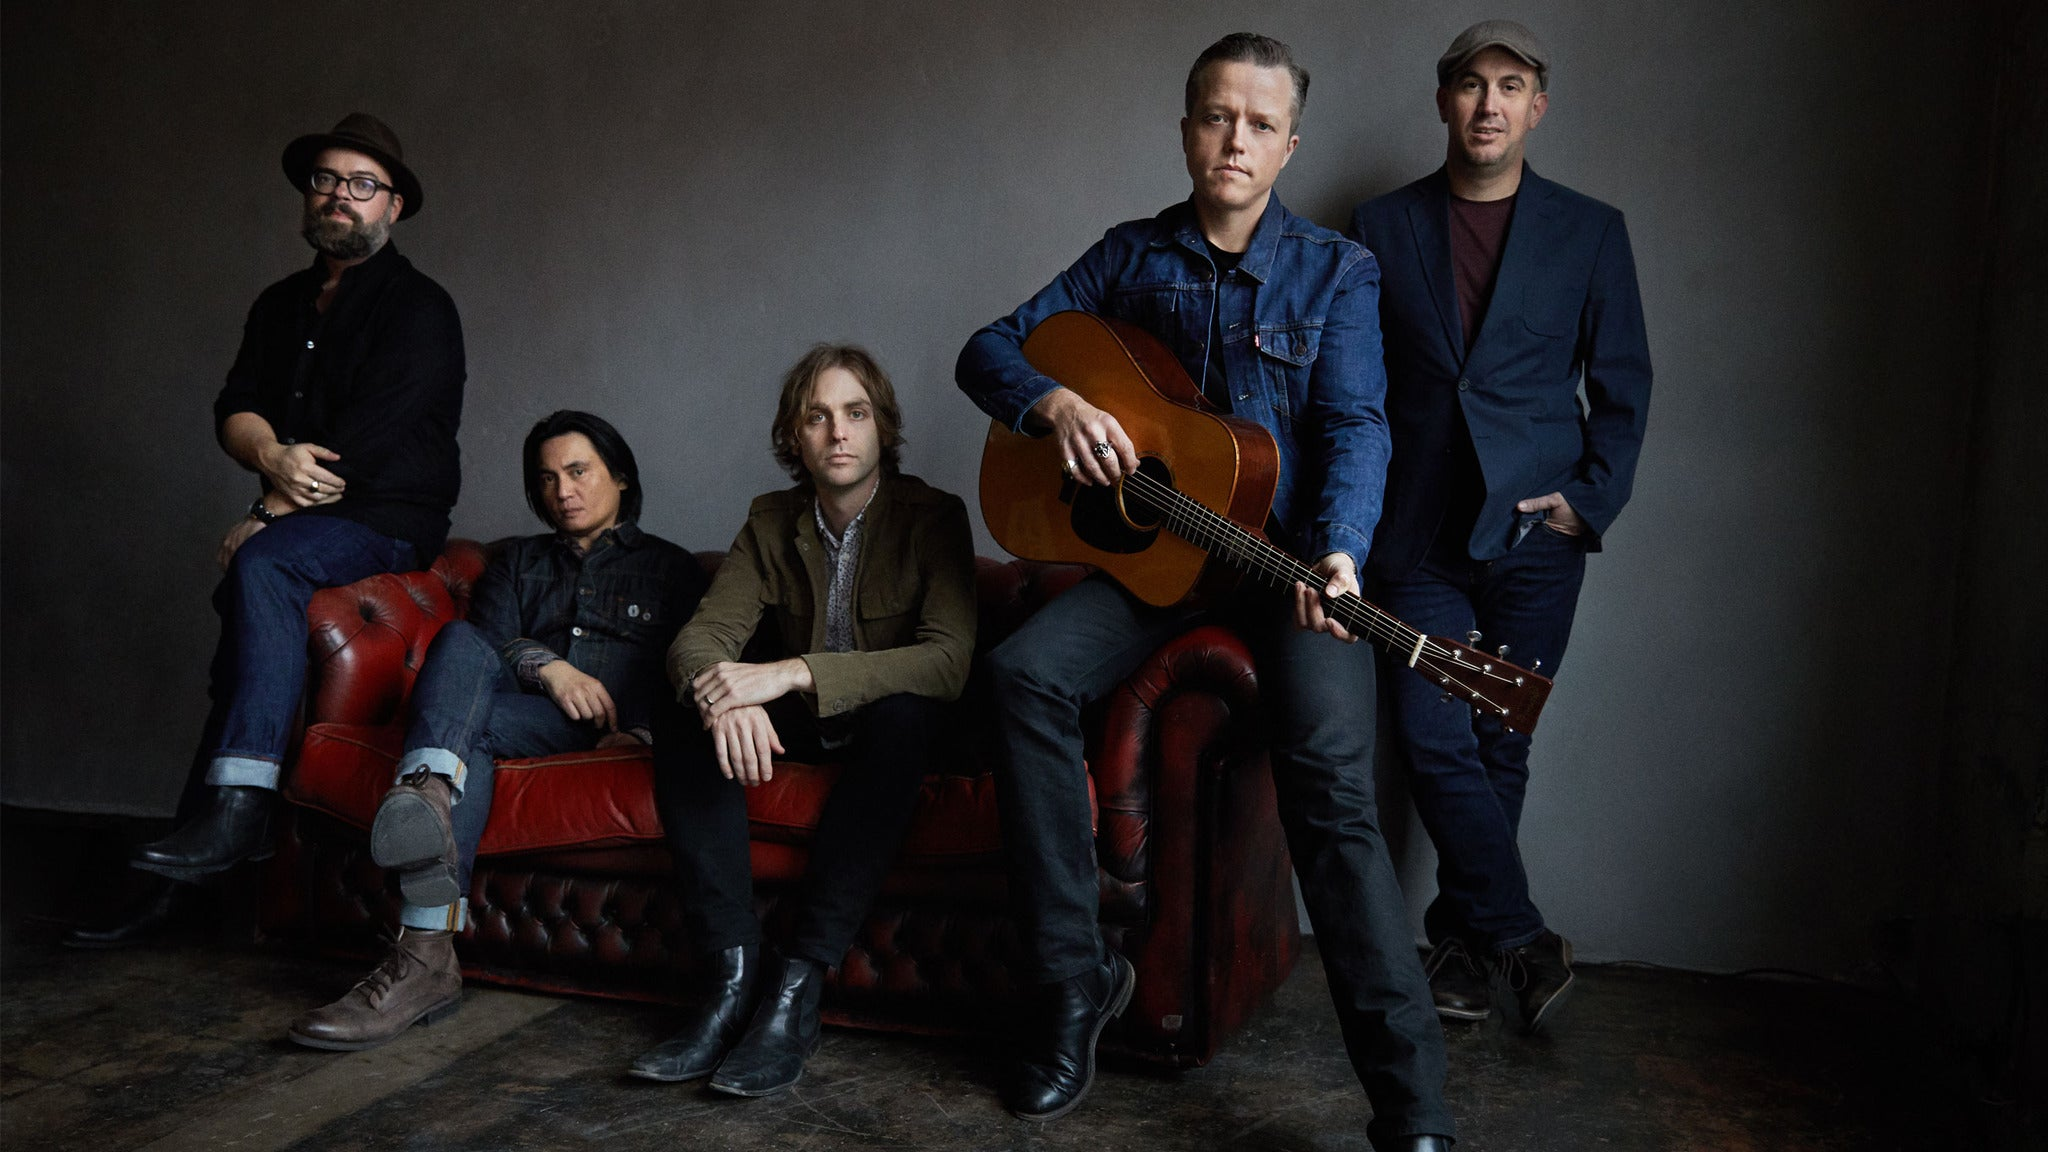 Jason Isbell & the 400 Unit at St Augustine Amphitheatre